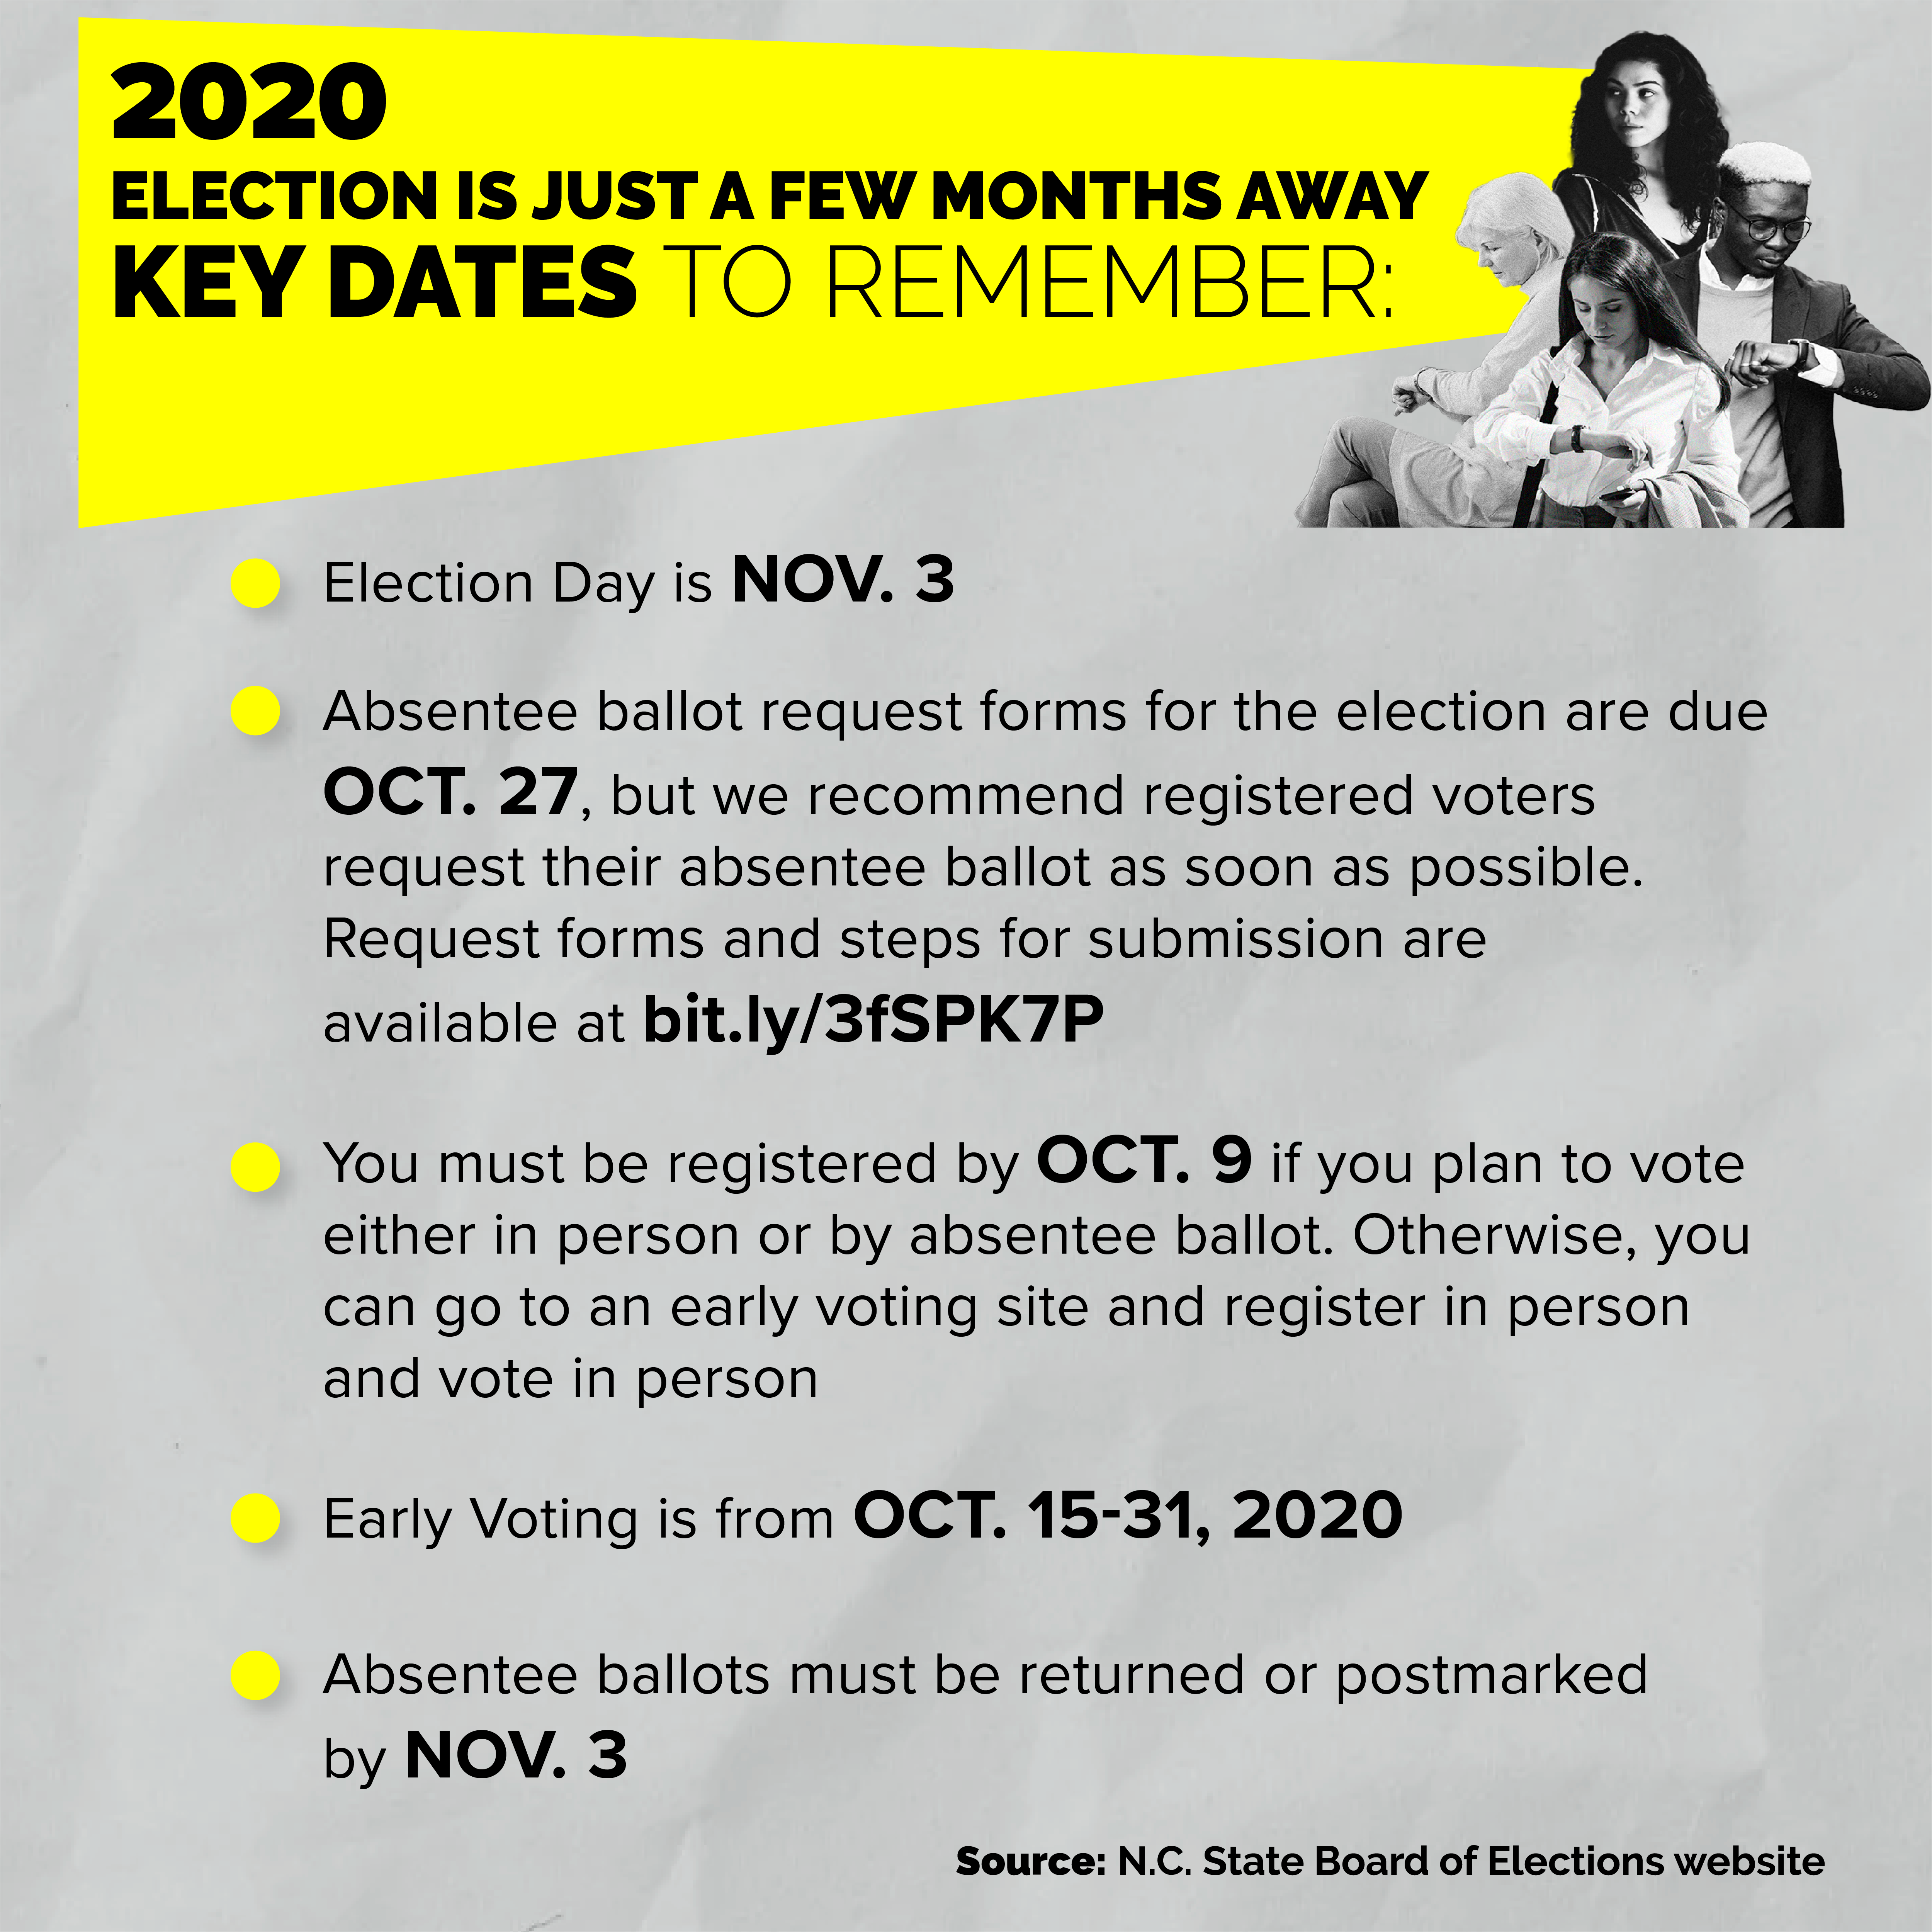 Early Voting for the 2020 General Election Begins October. 15